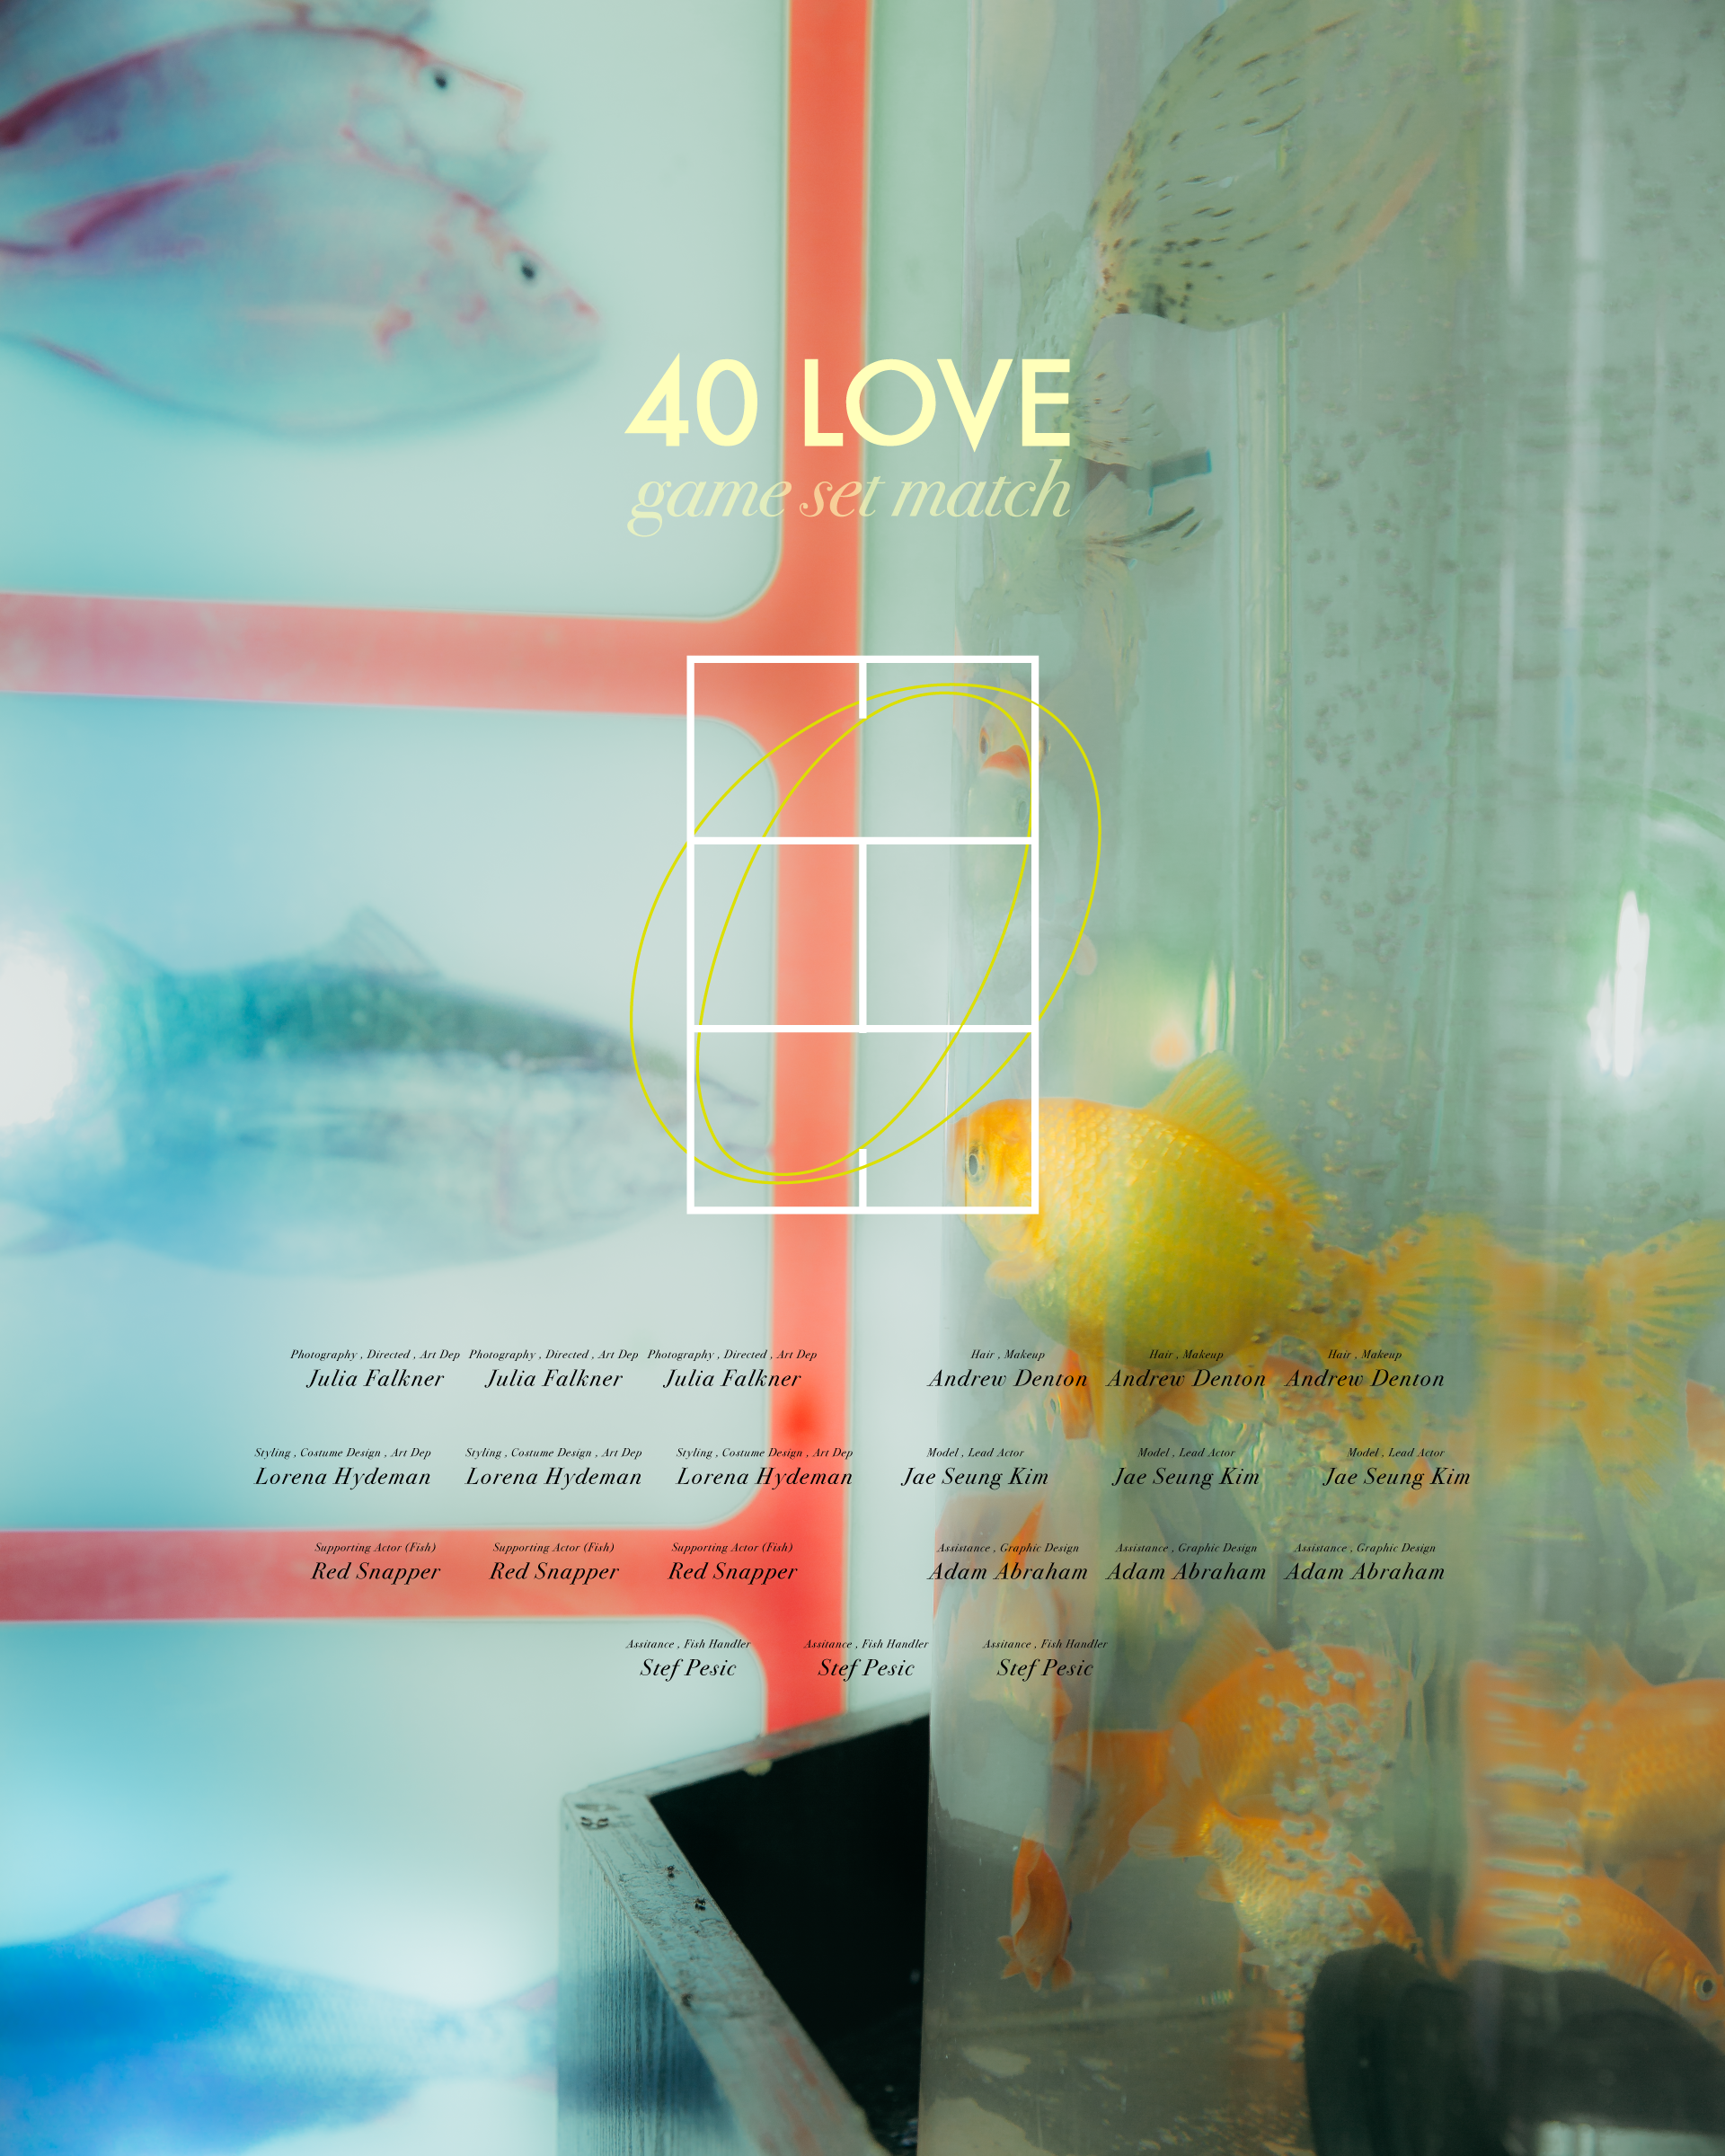 40/LOVE - King Kong Magazine